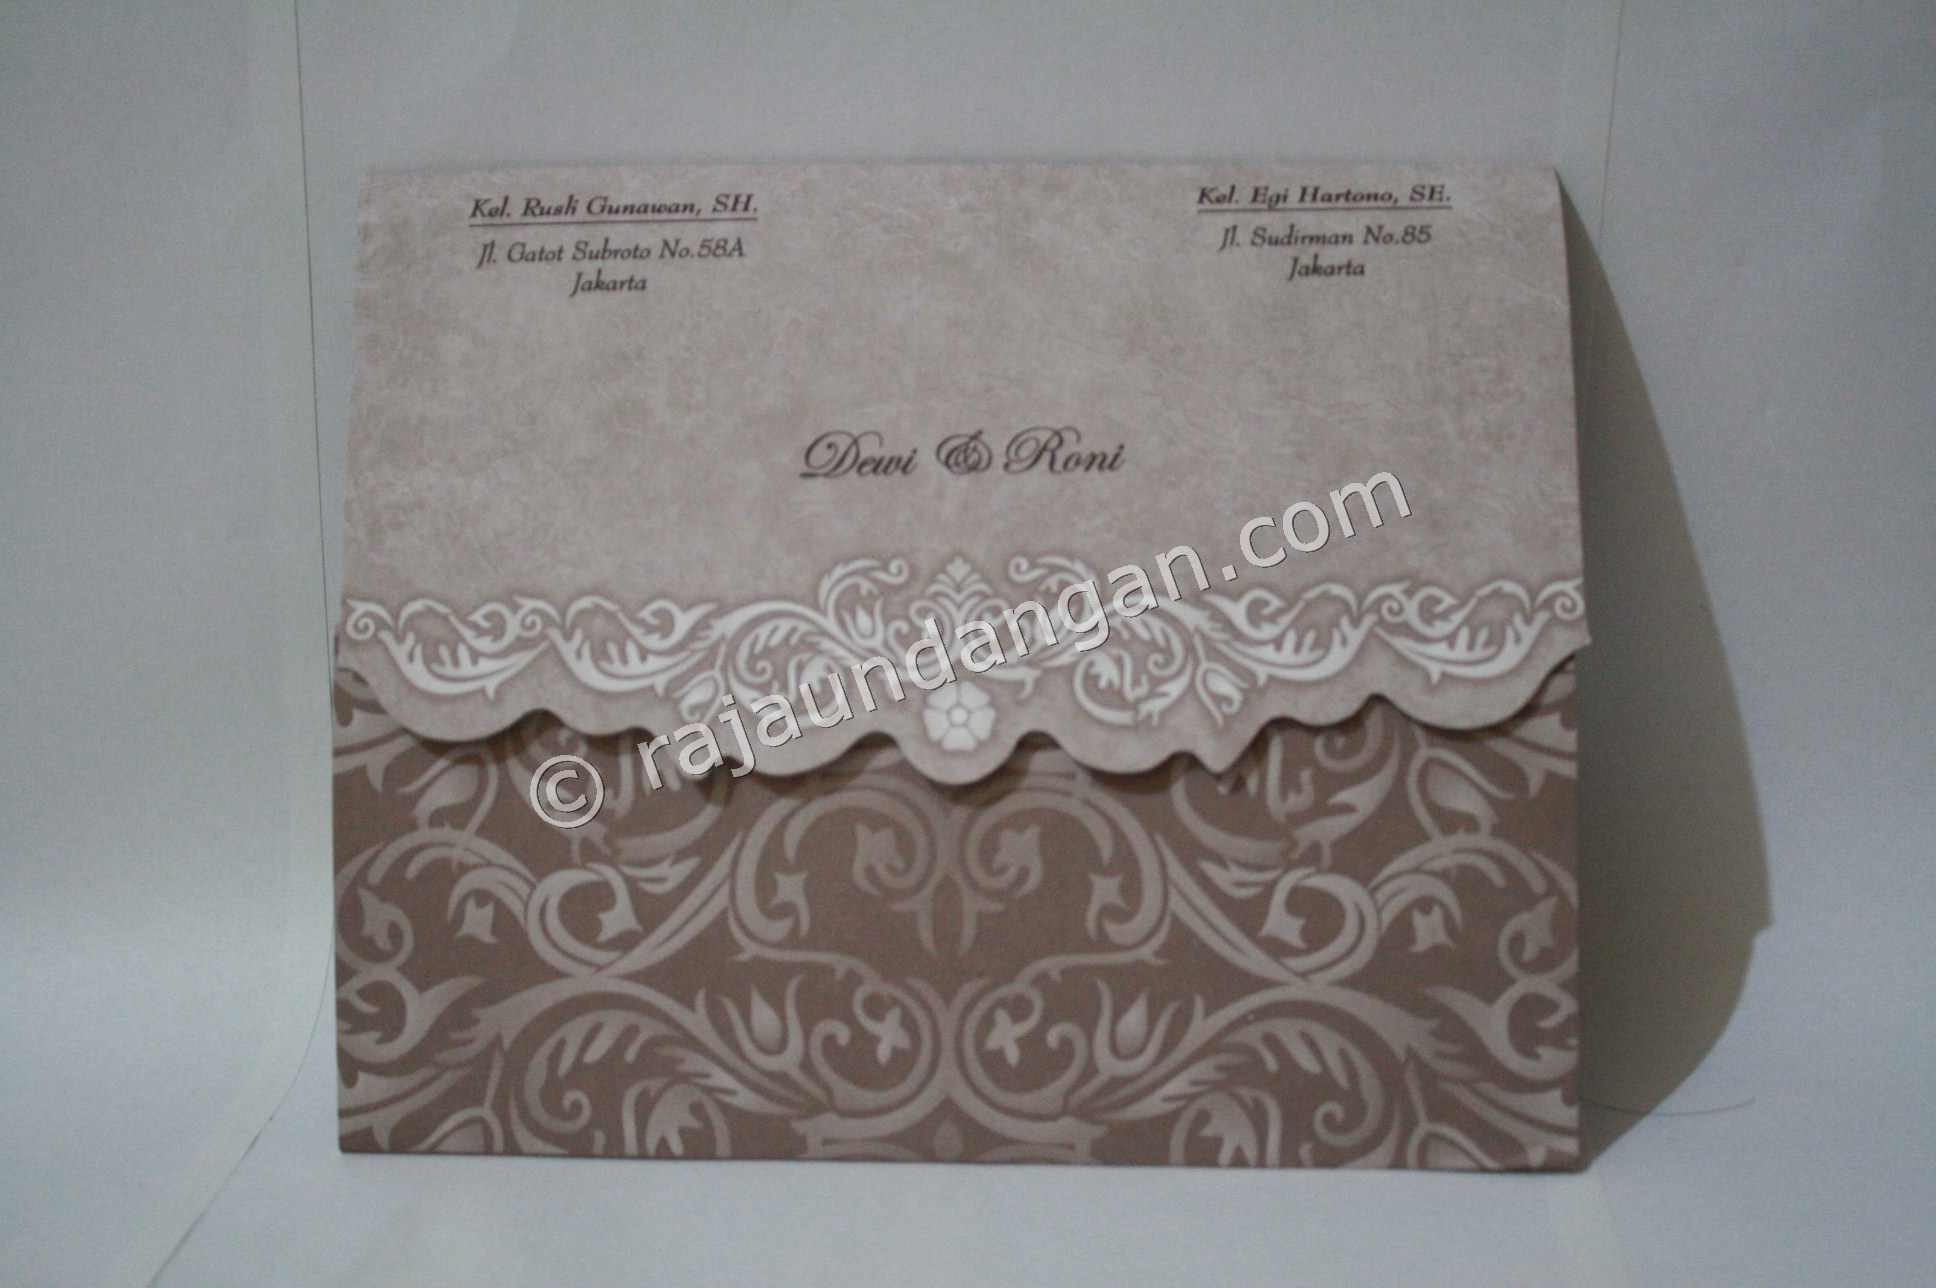 undangan pernikahan softcover ED 28 3 - Pesan Wedding Invitations Simple di Jambangan Karah